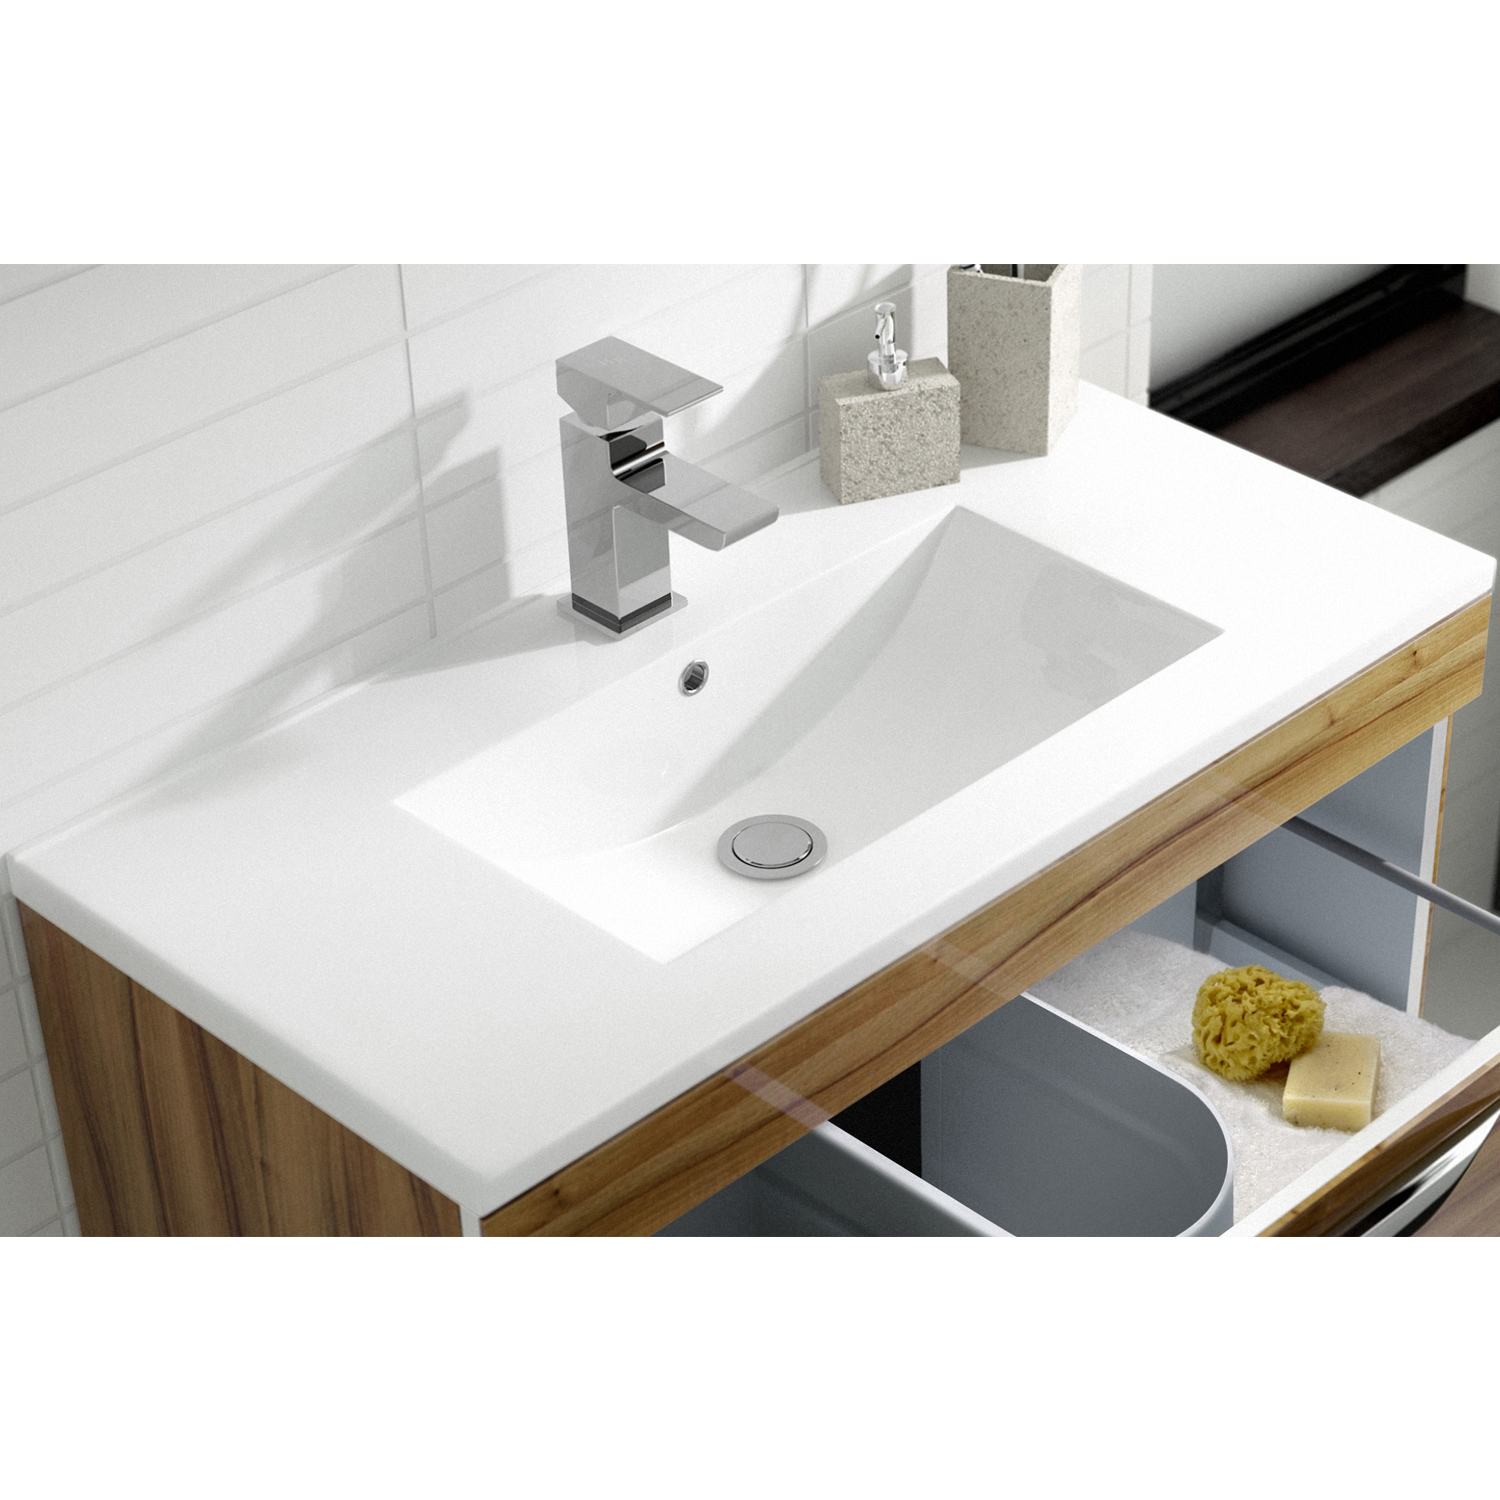 Hudson Reed Memoir Floor Mounted 2-Door Bathroom Vanity Unit and Minimalist Basin 600mm W Gloss Walnut 1 Tap Hole